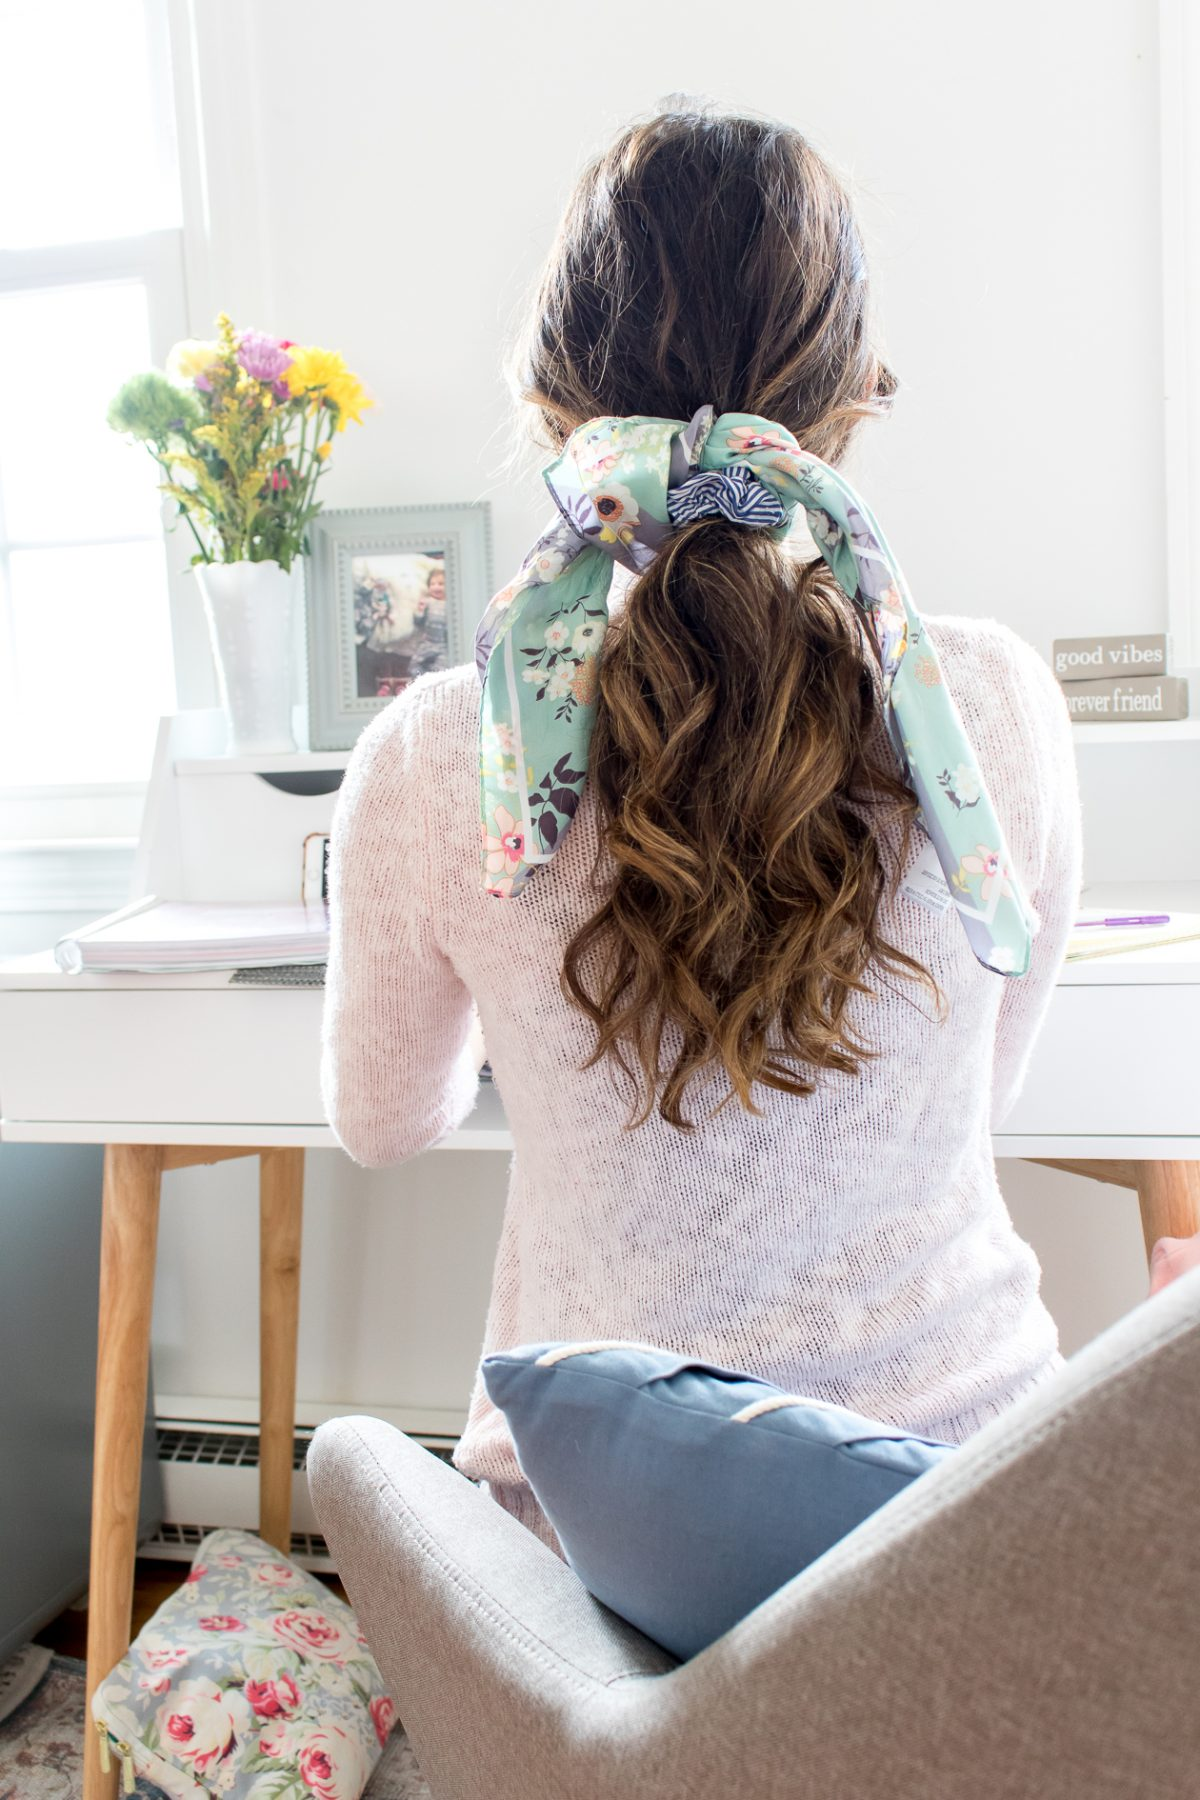 Woman with hair scarf tied around curly pony tail sitting at computer in a pink sweater